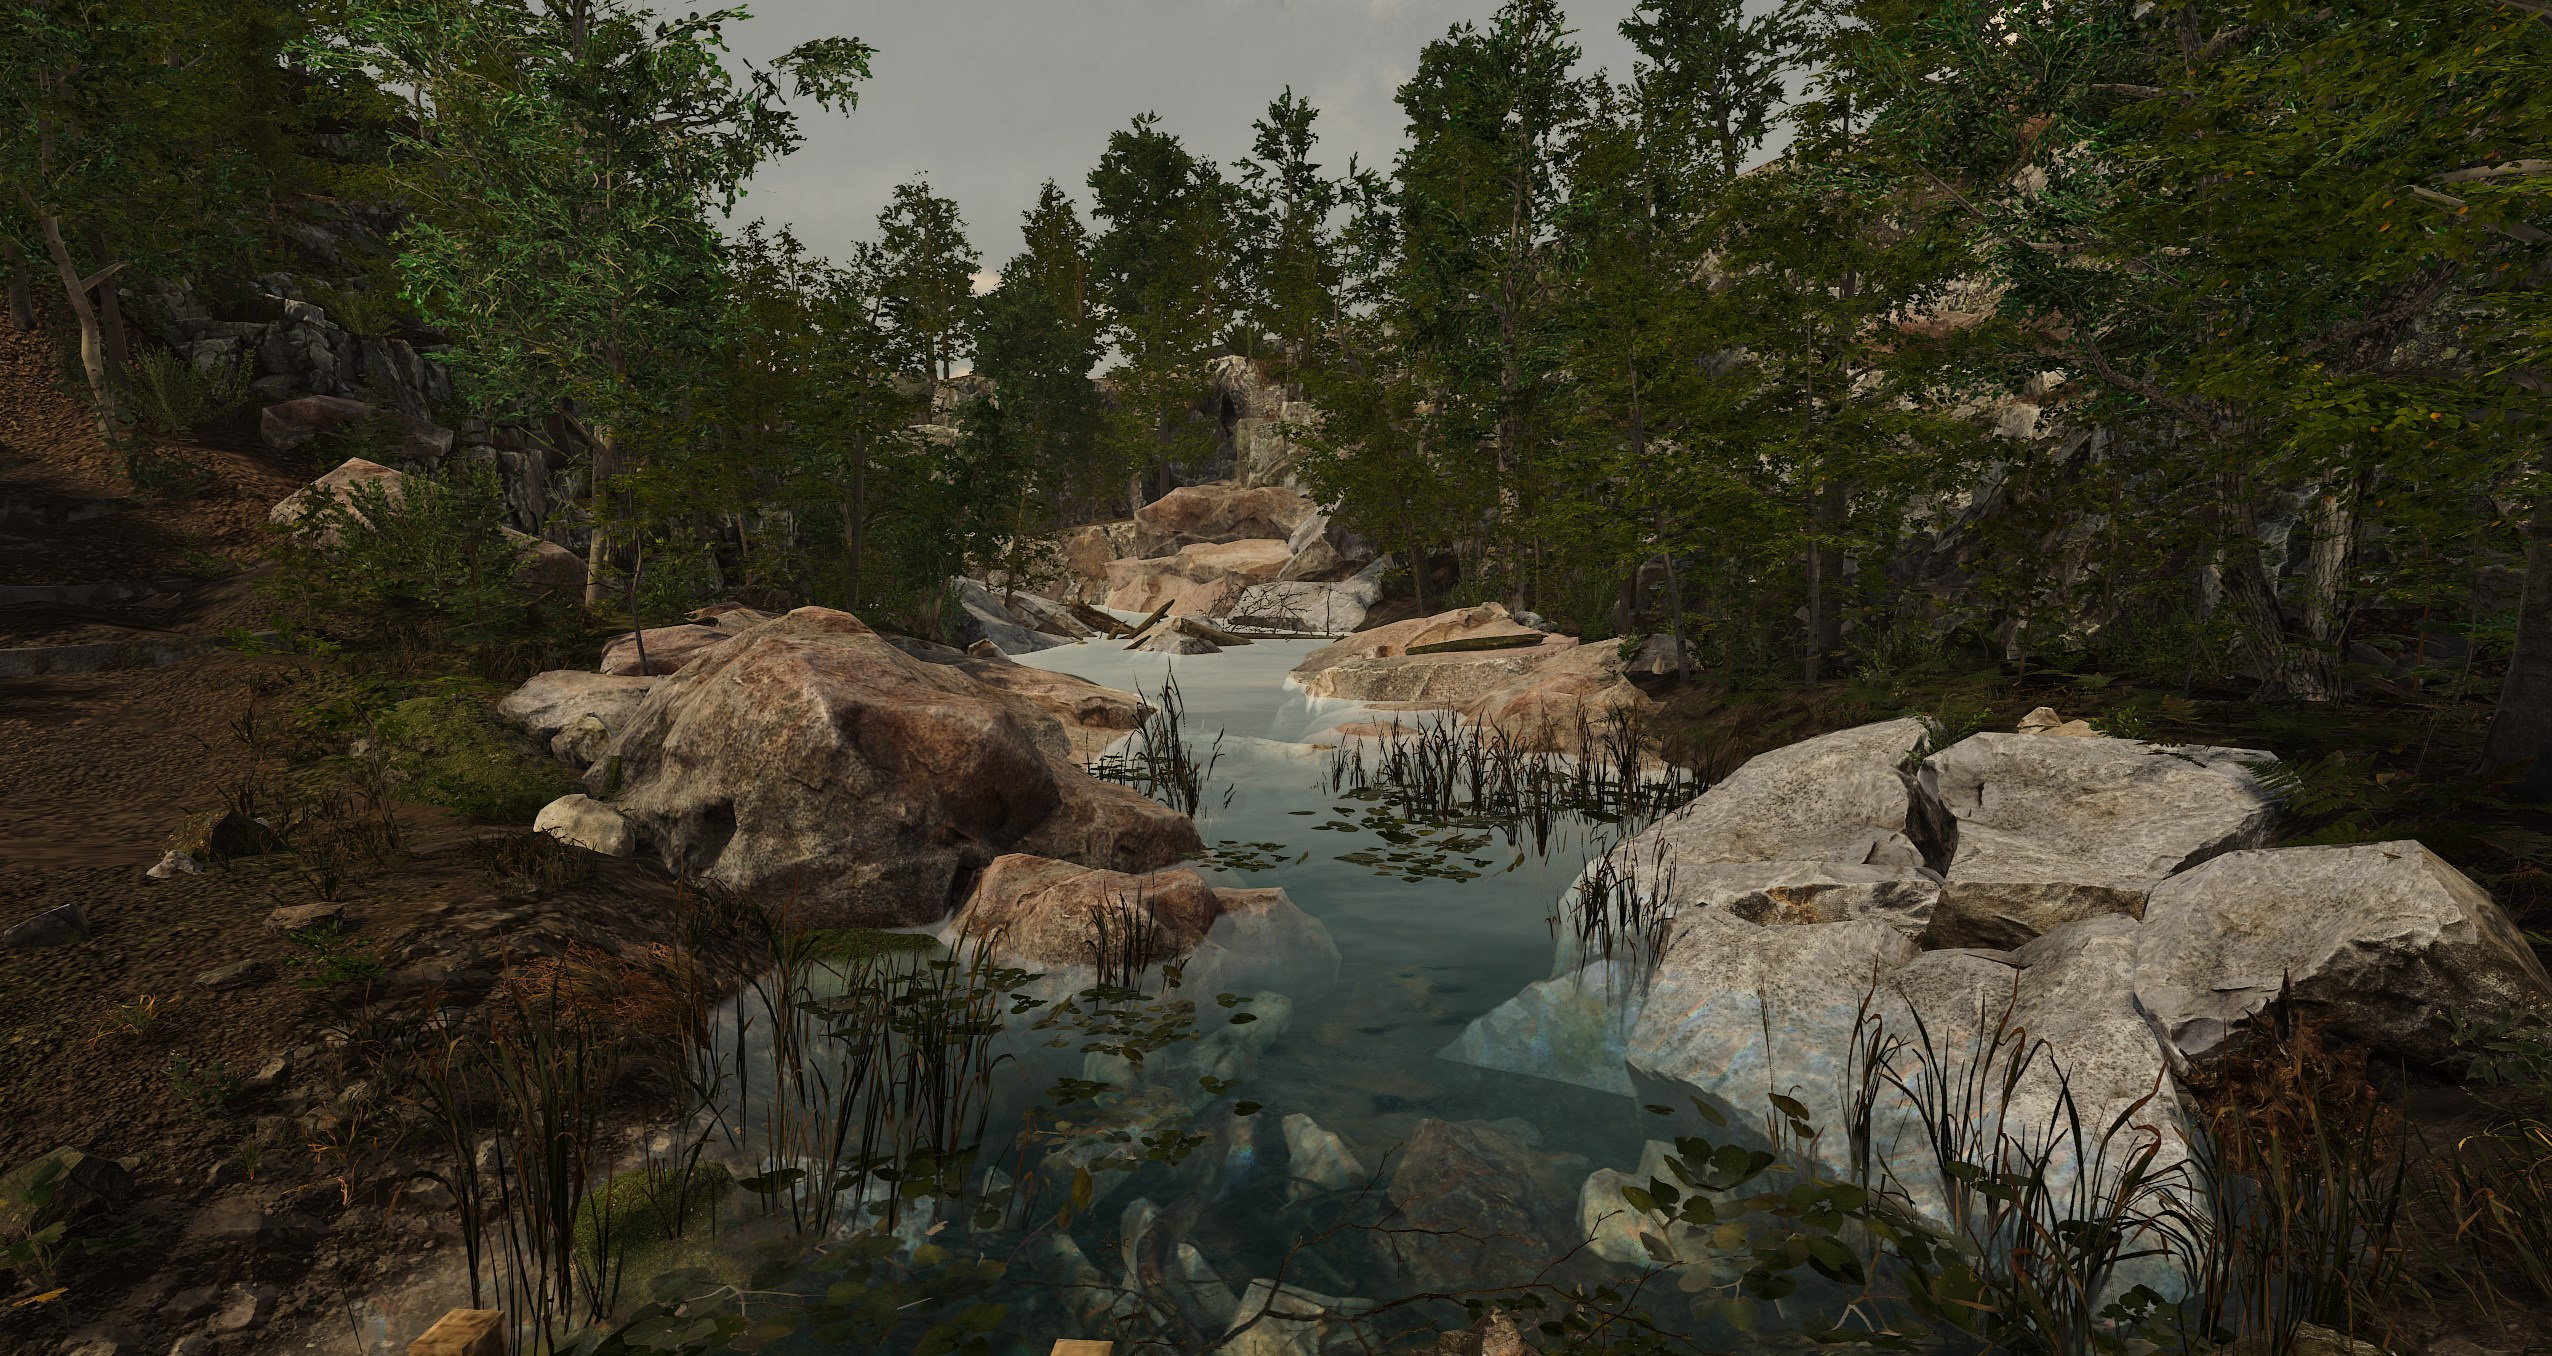 An animated scene with trees and rocks surrounding a creek.